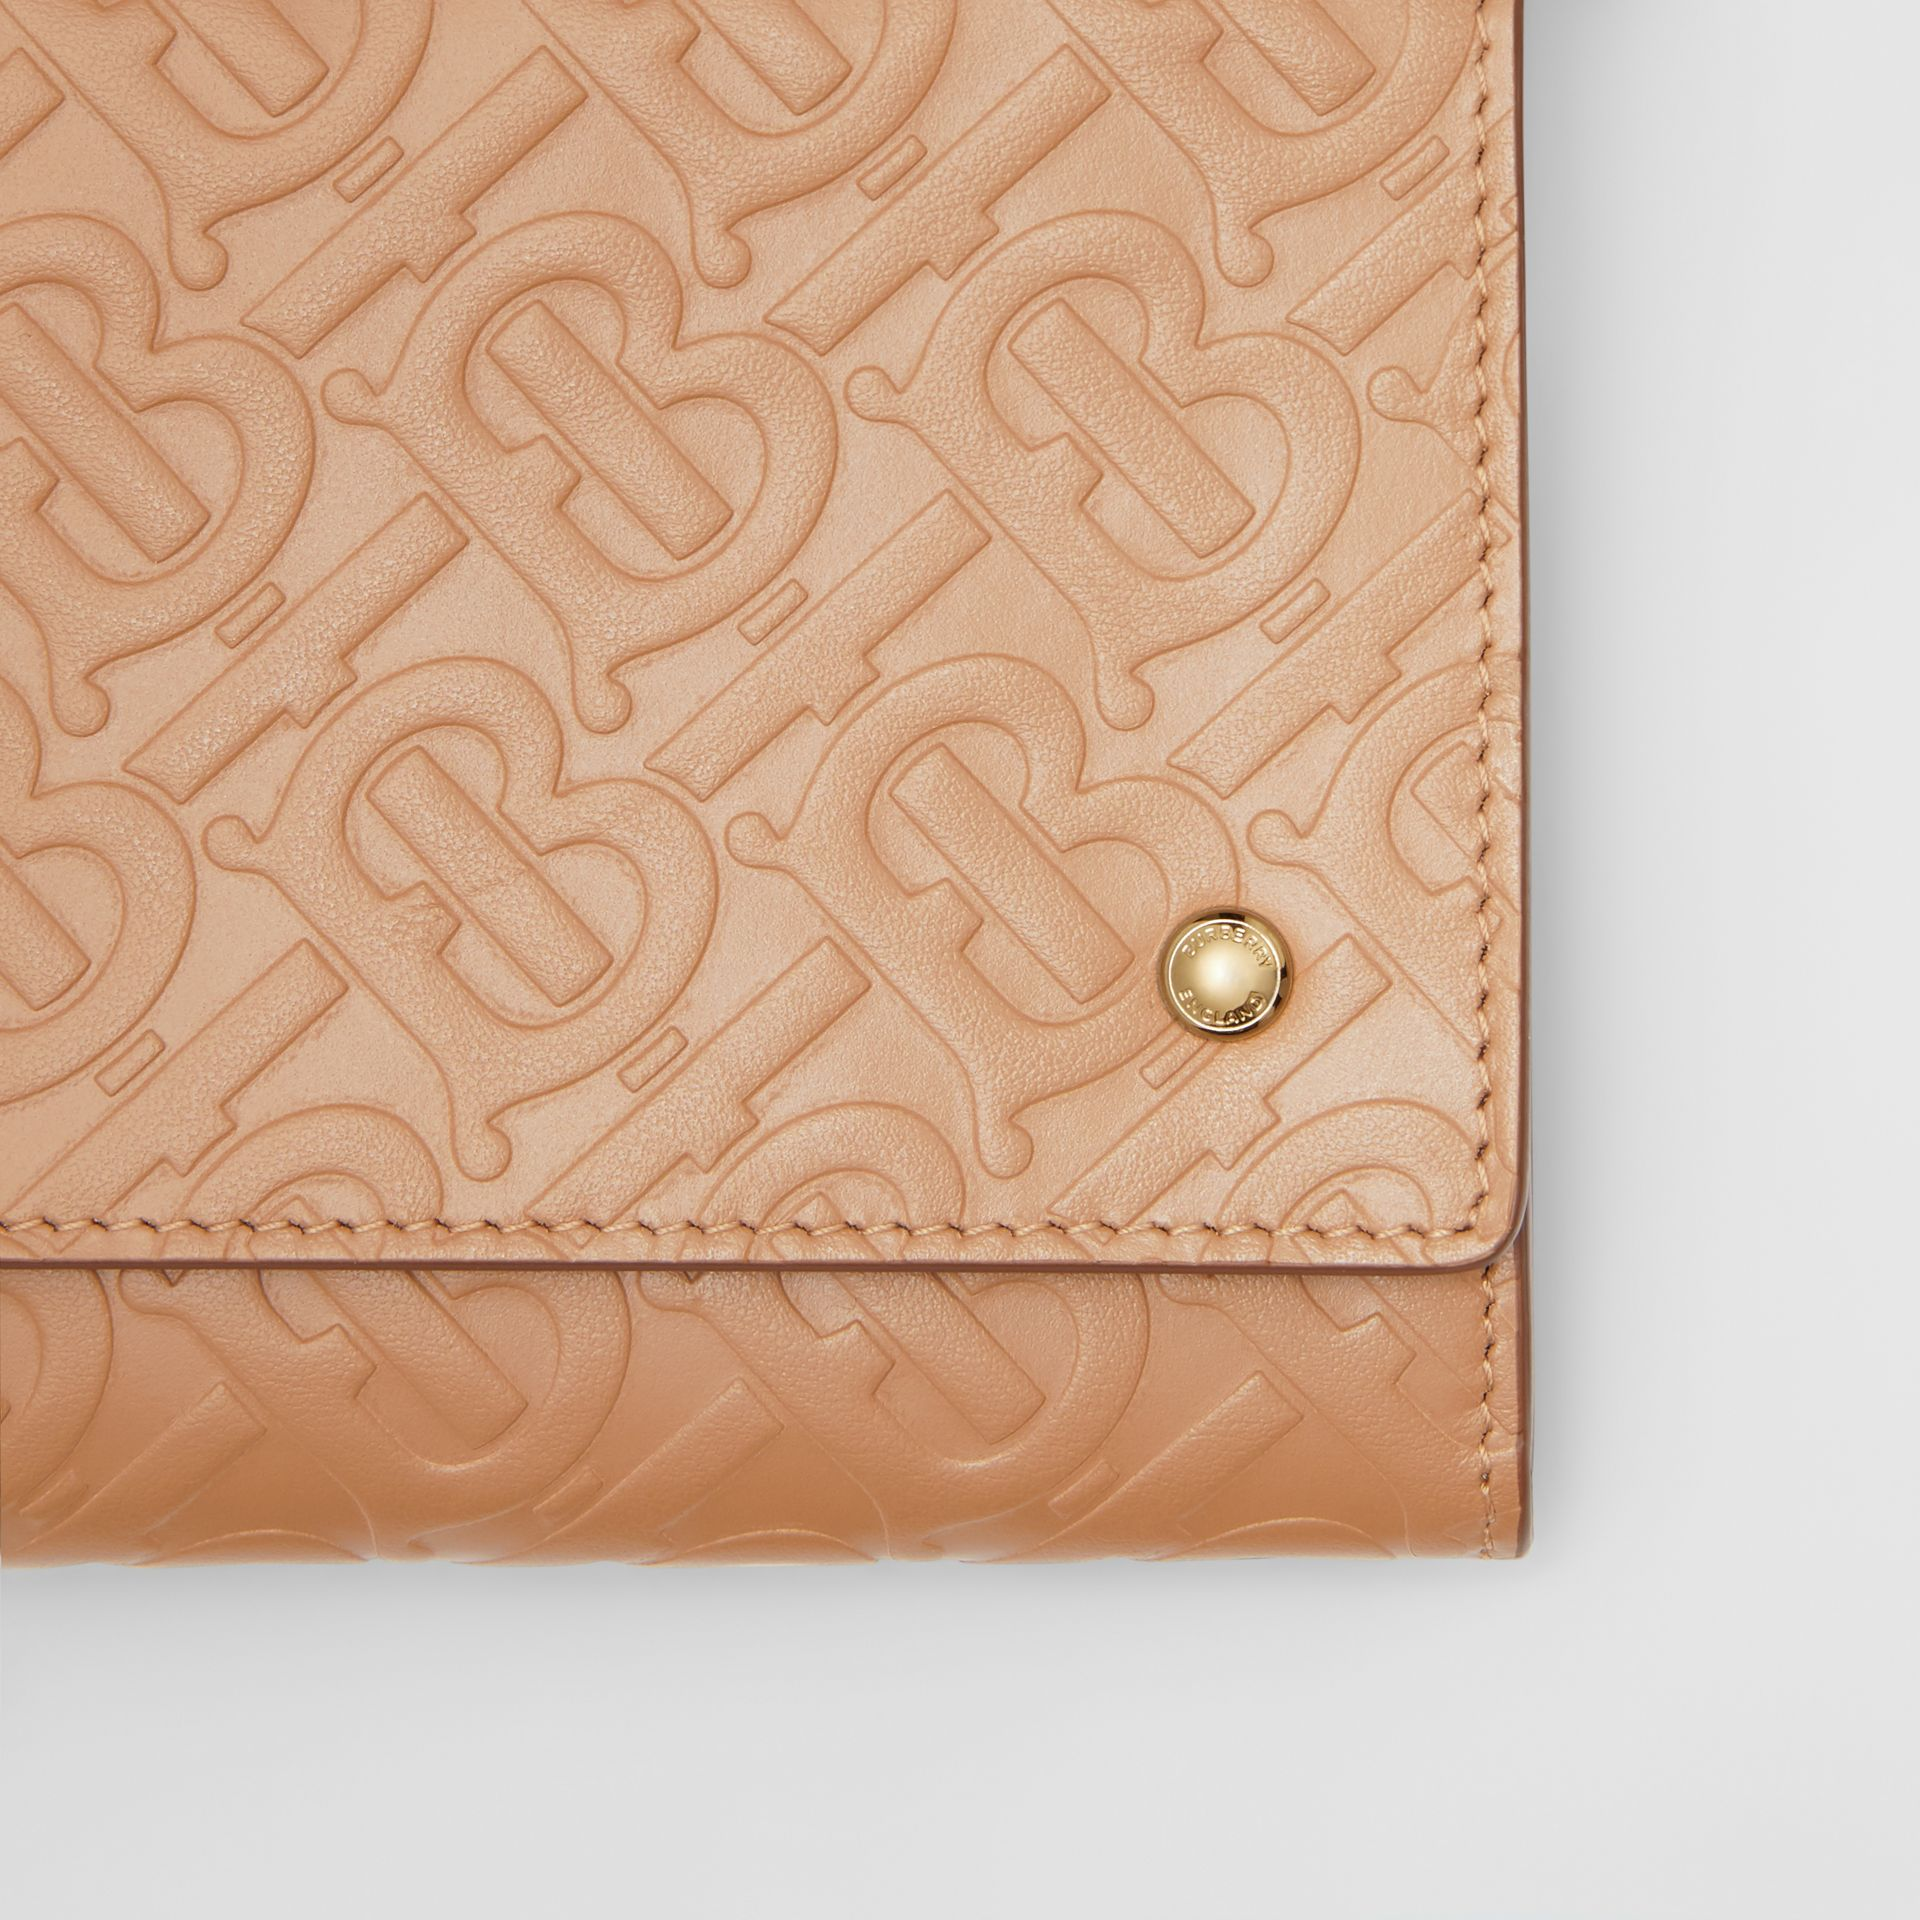 Monogram Leather Wallet with Detachable Strap in Light Camel - Women | Burberry - gallery image 1